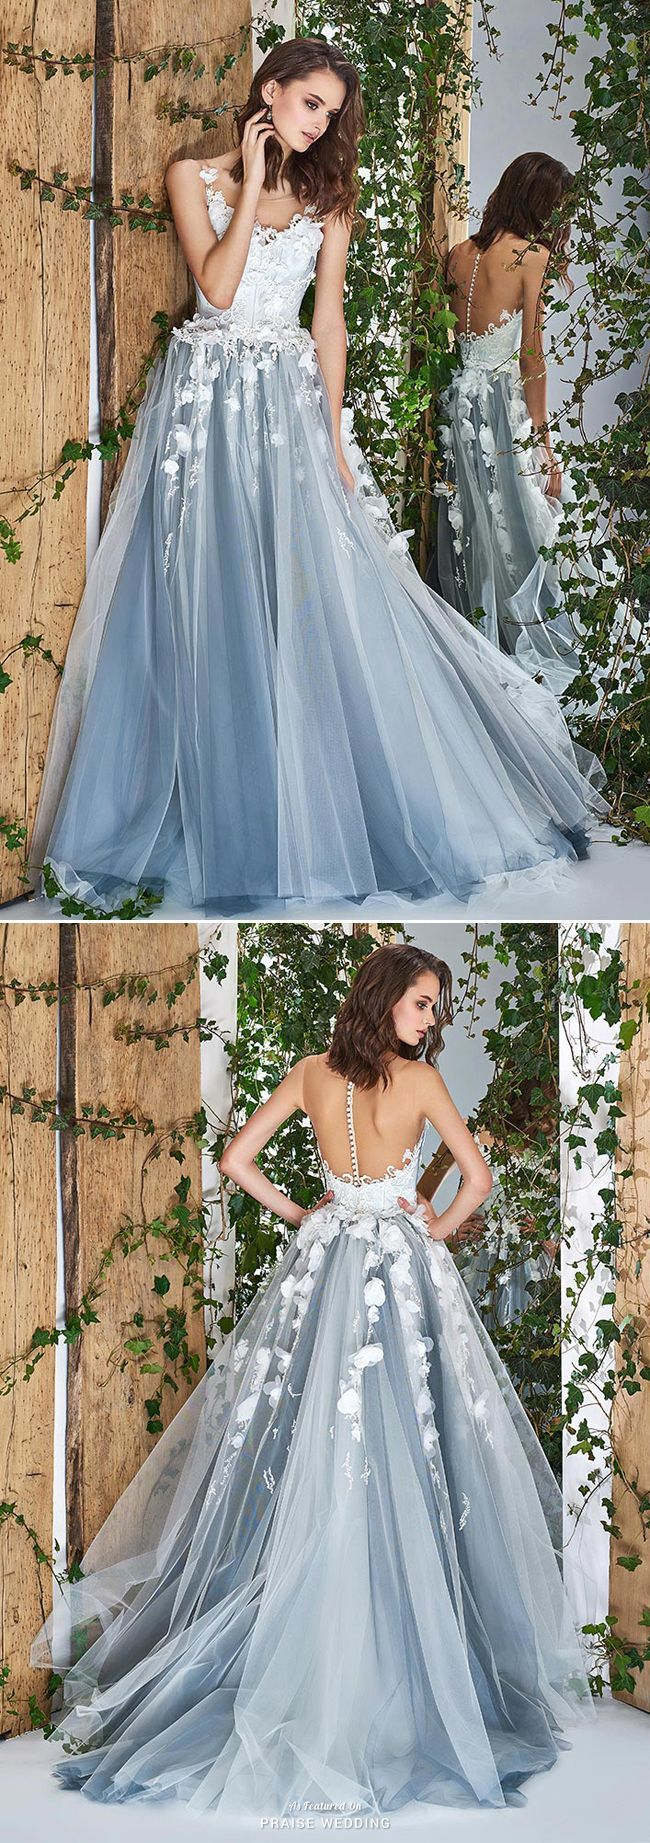 This blue gown from papilio featuring beautiful floral embroideries